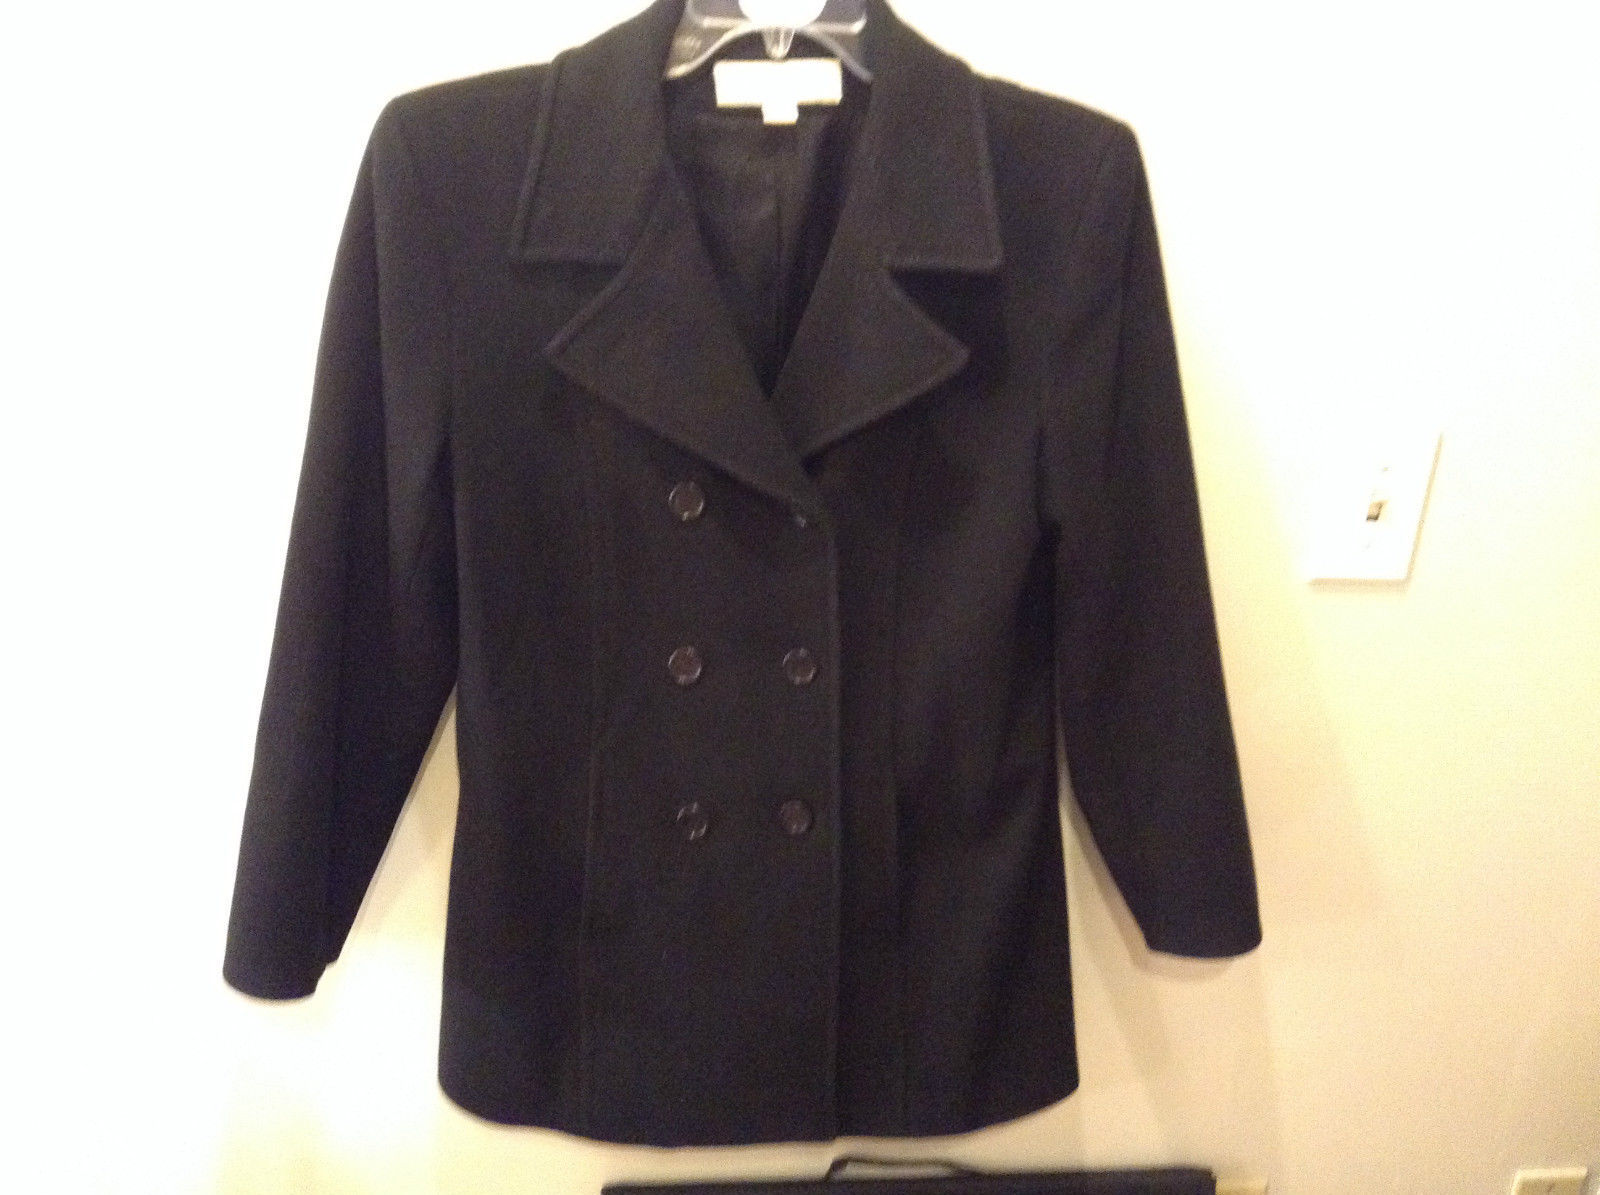 Size 8 Liz Claiborne Fully Lined Black Pea Coat Good Condition